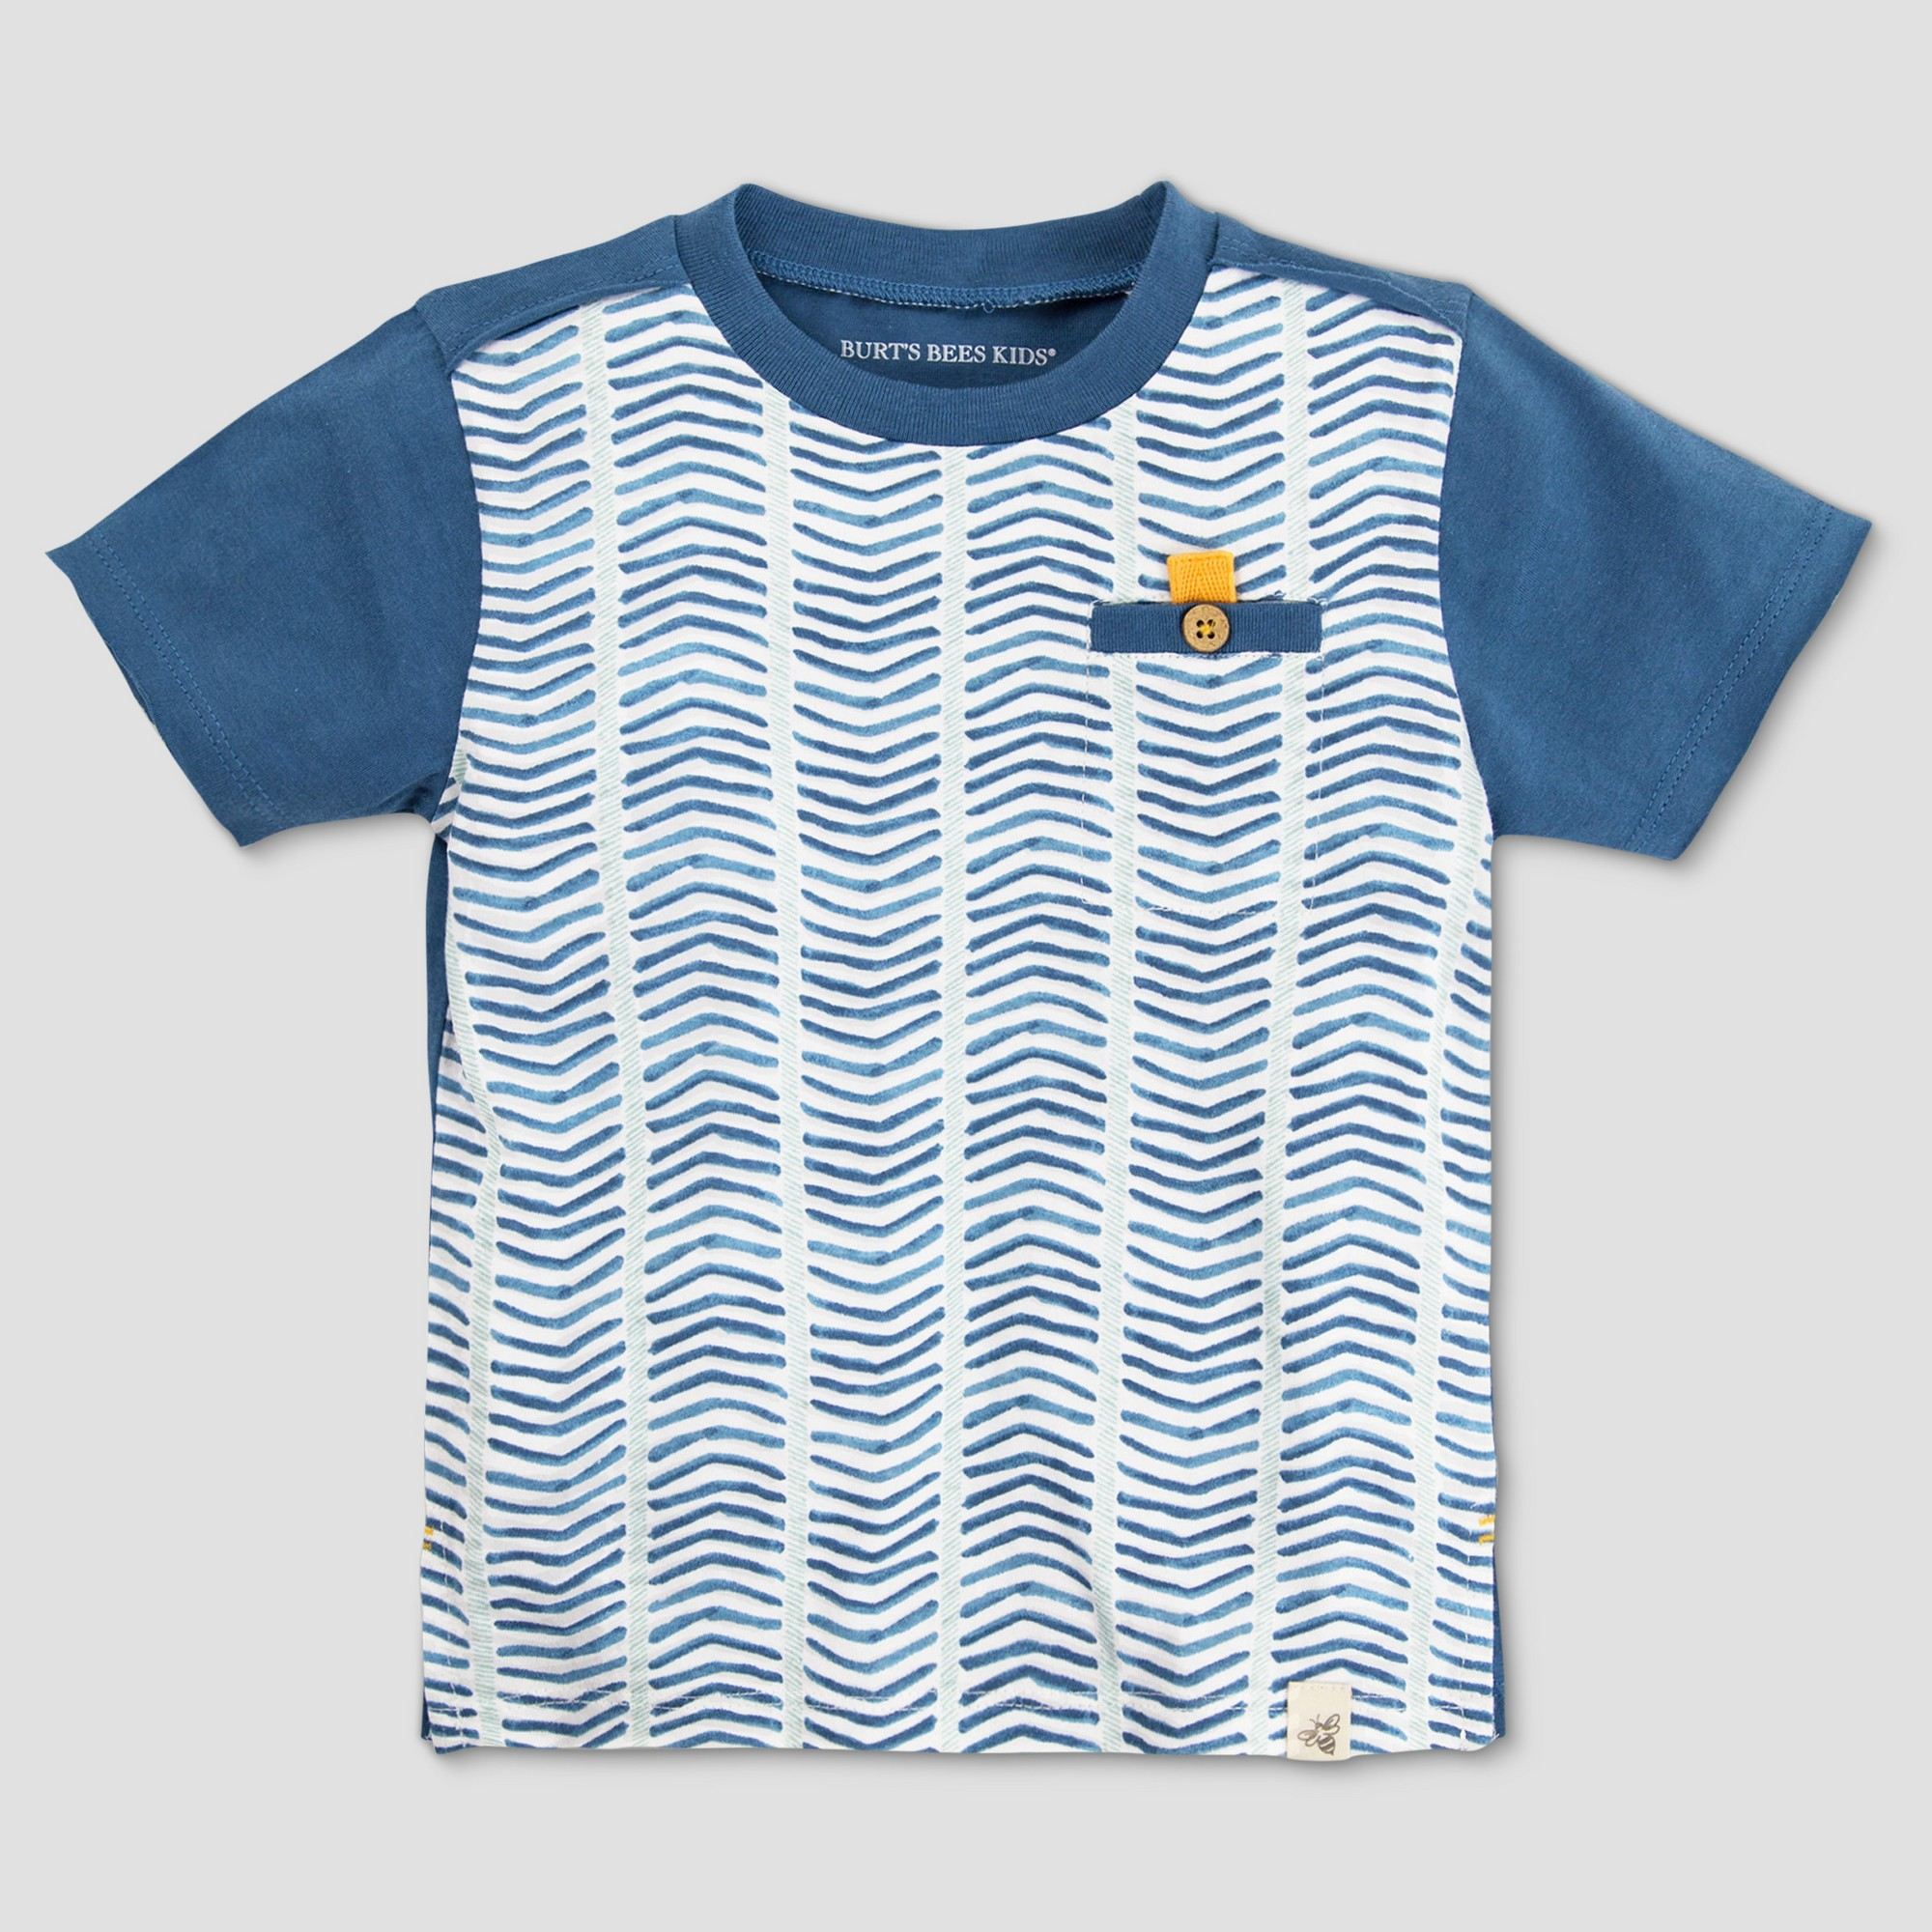 , Burt's Bees Baby Toddler Boys' Organic Cotton Faux Twill Short Sleeve T-Shirt Star – Blue 4T, My Pop Star Kda Blog, My Pop Star Kda Blog